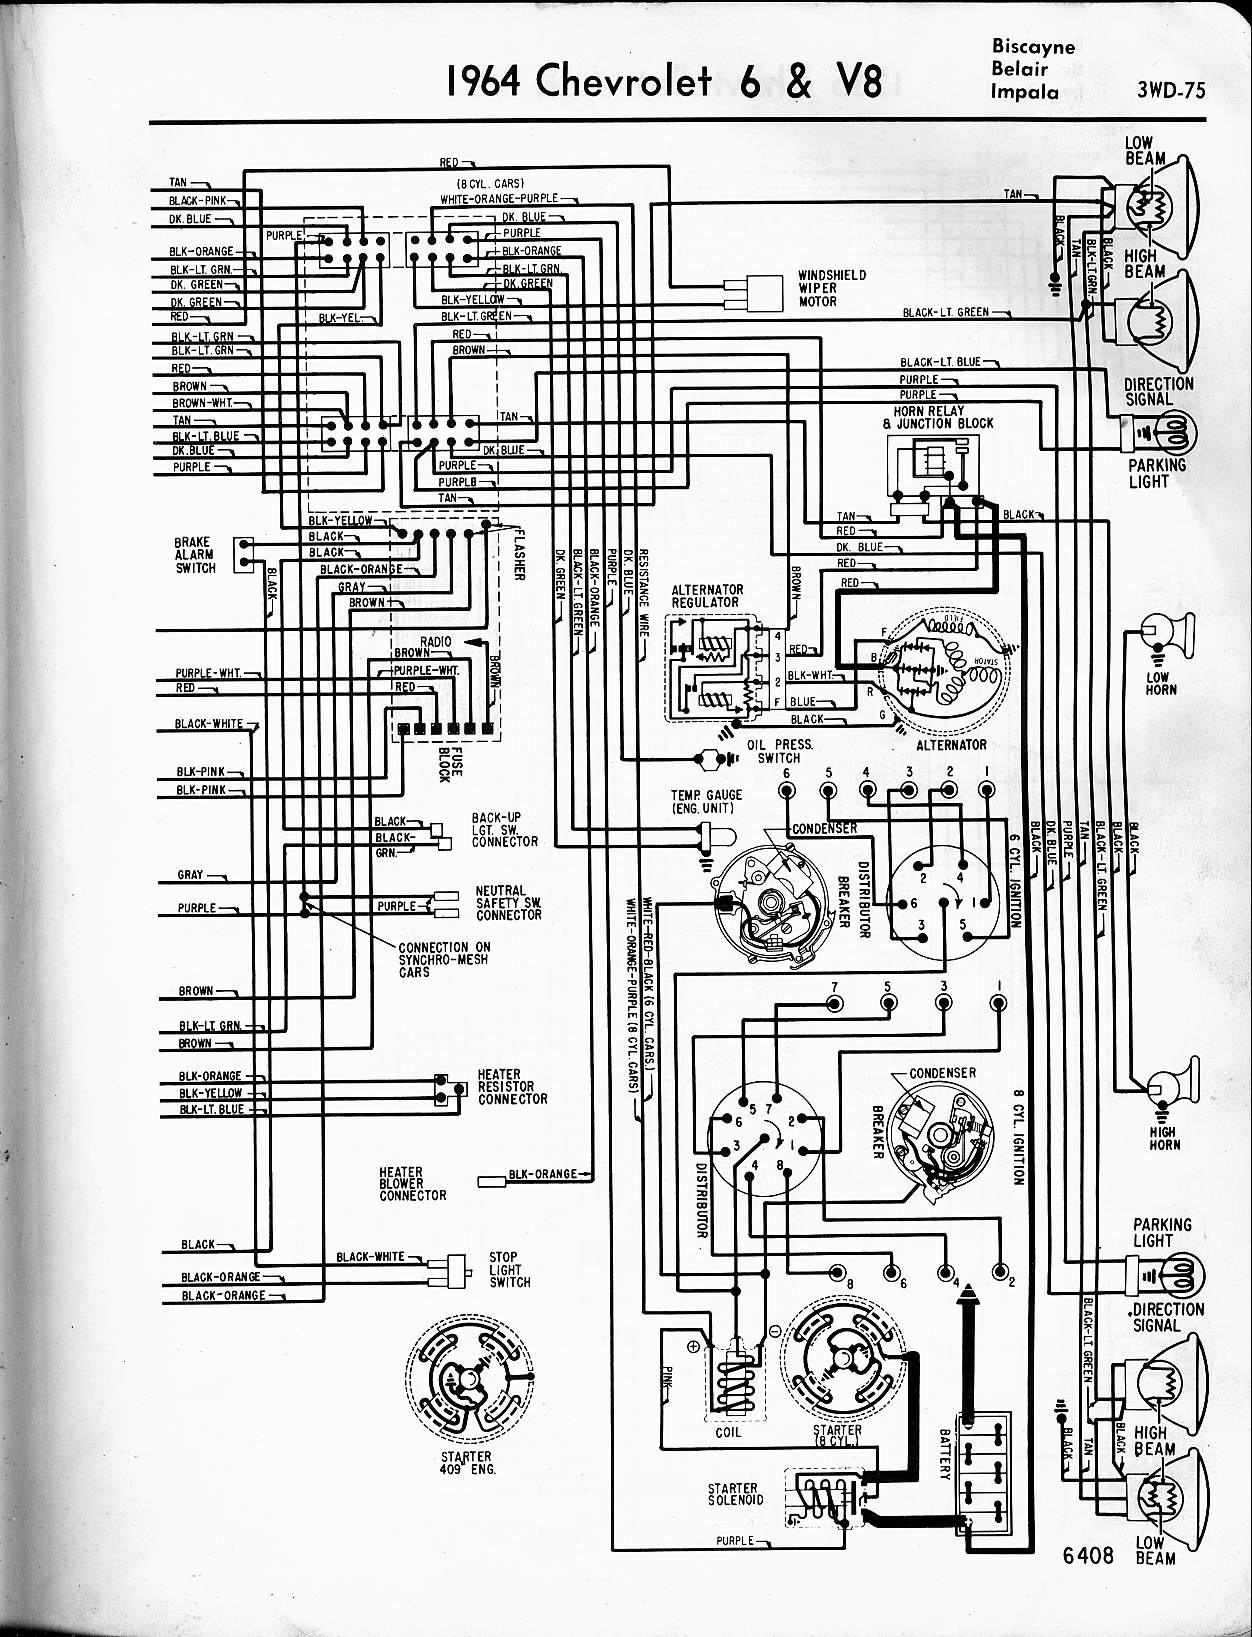 1964 chevelle wiring diagram wiring schematic diagram